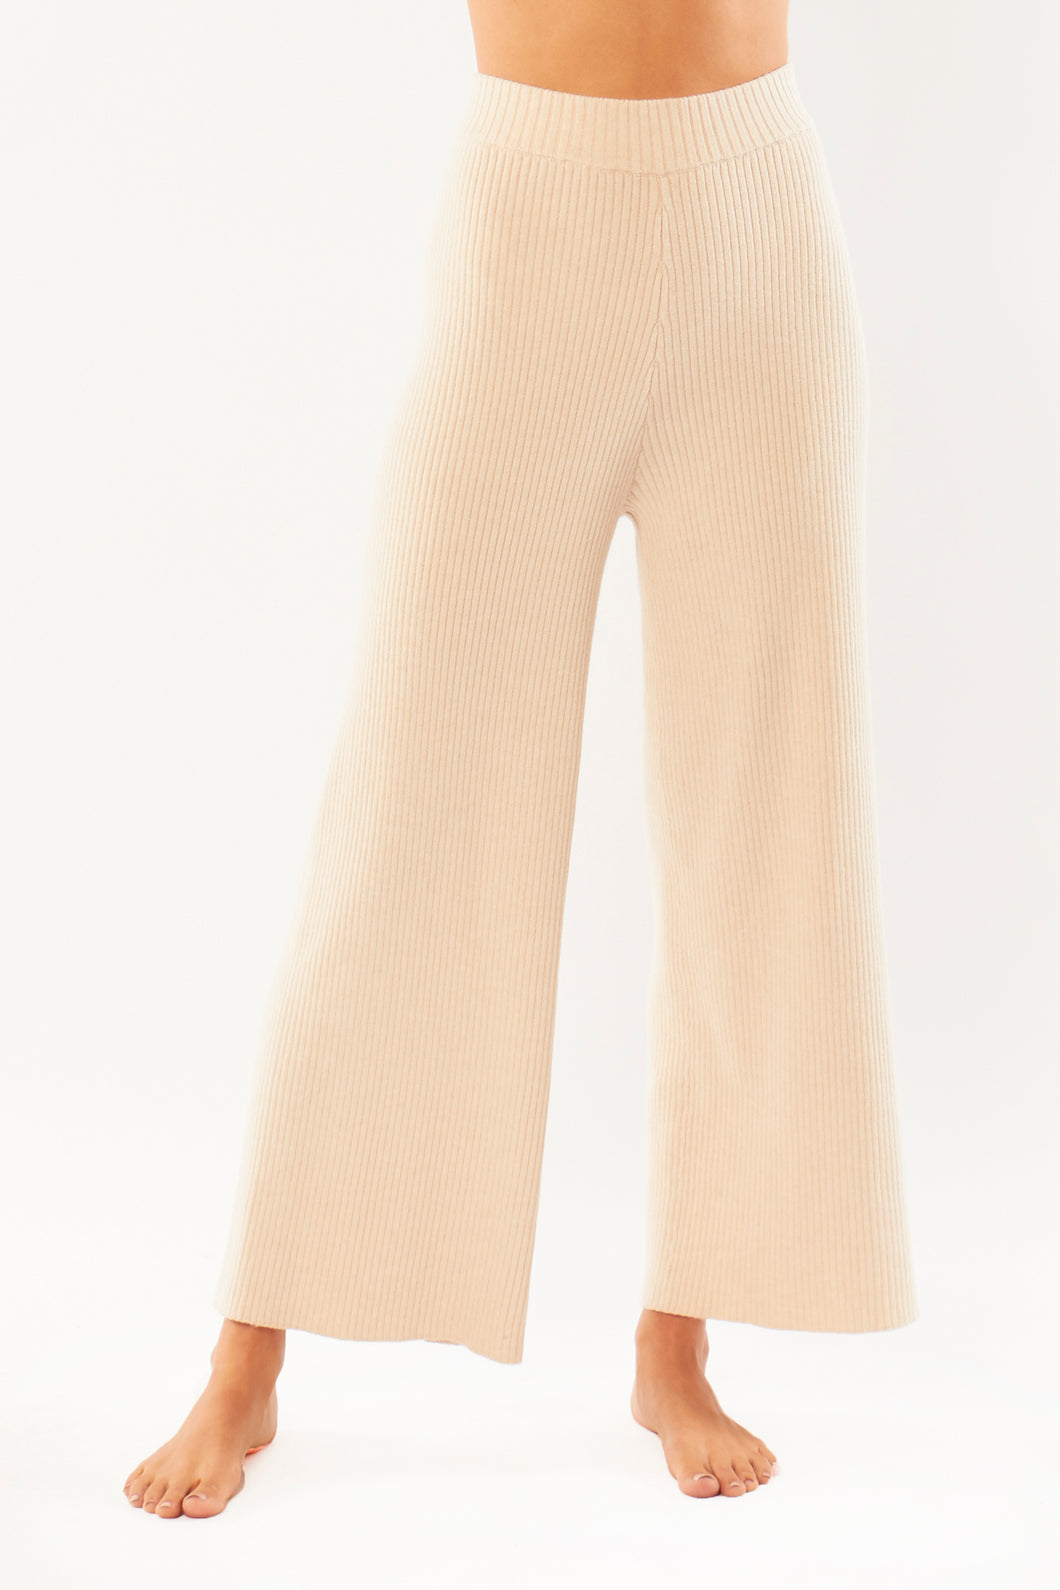 Southern Bound Pant - Sand